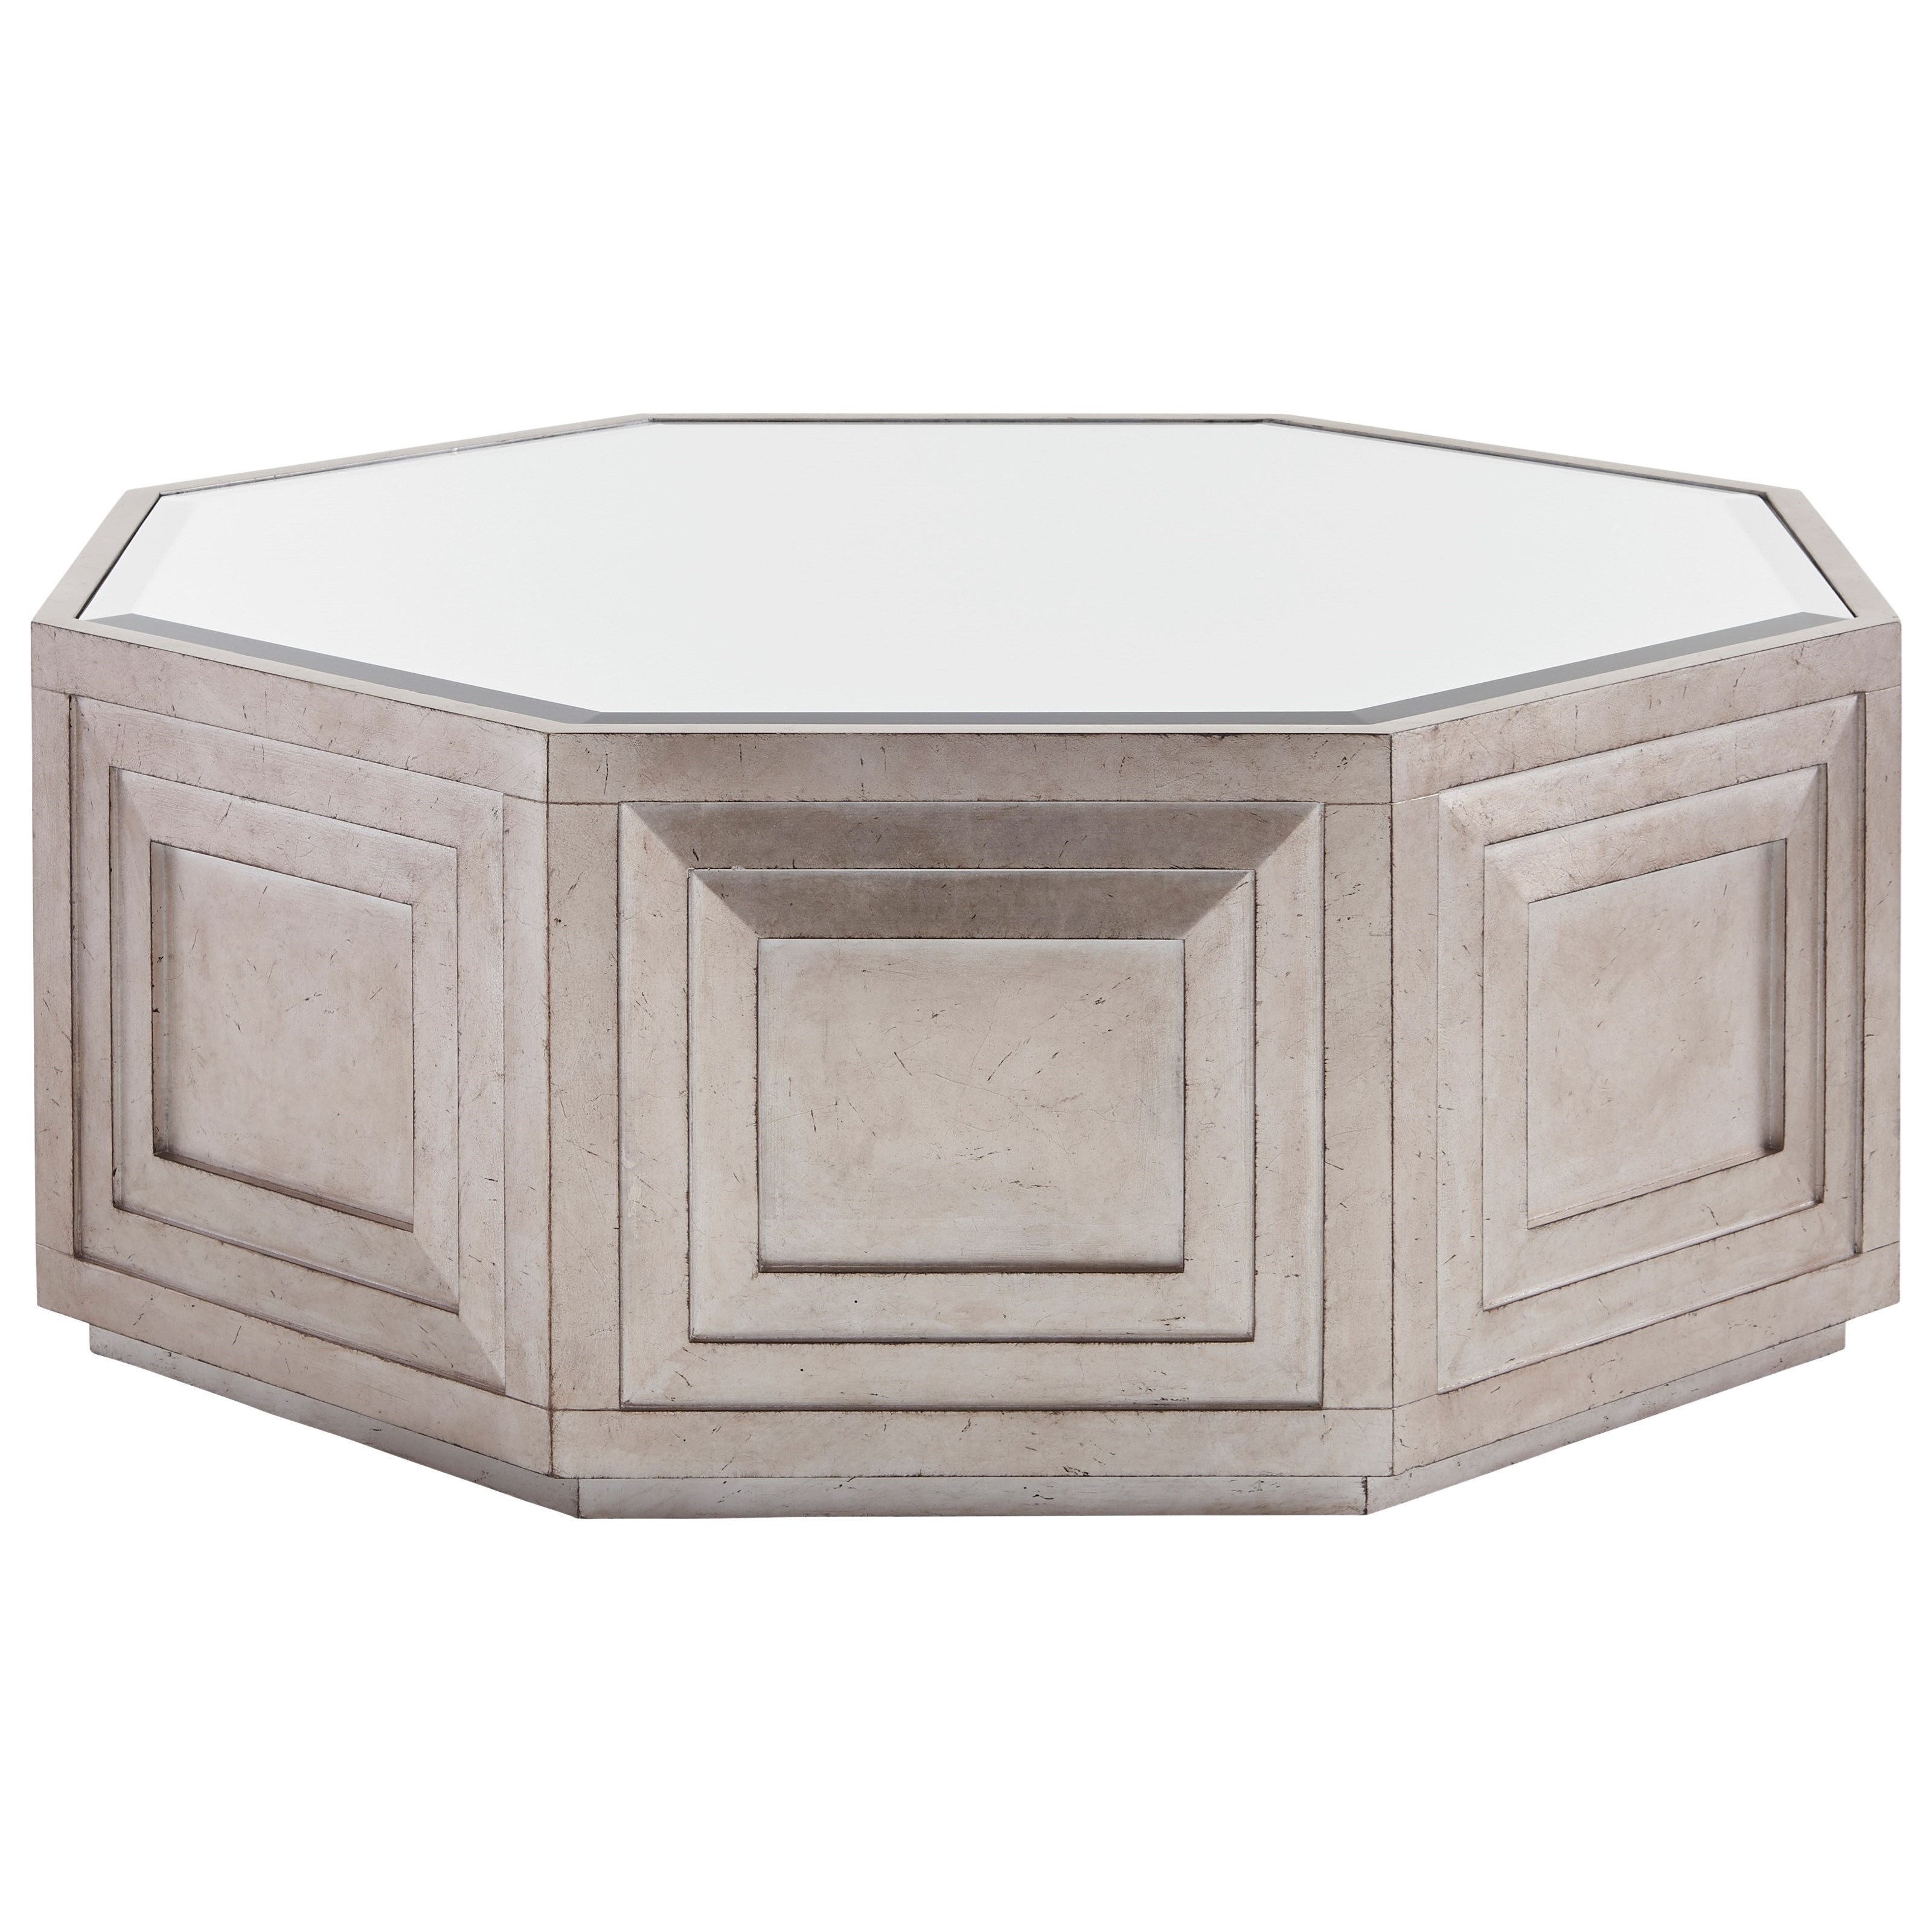 Lexington Ariana Rochelle Octagonal Cocktail Table With Silver Leaf And  Mirrored Top   Hudsonu0027s Furniture   Cocktail/Coffee Tables